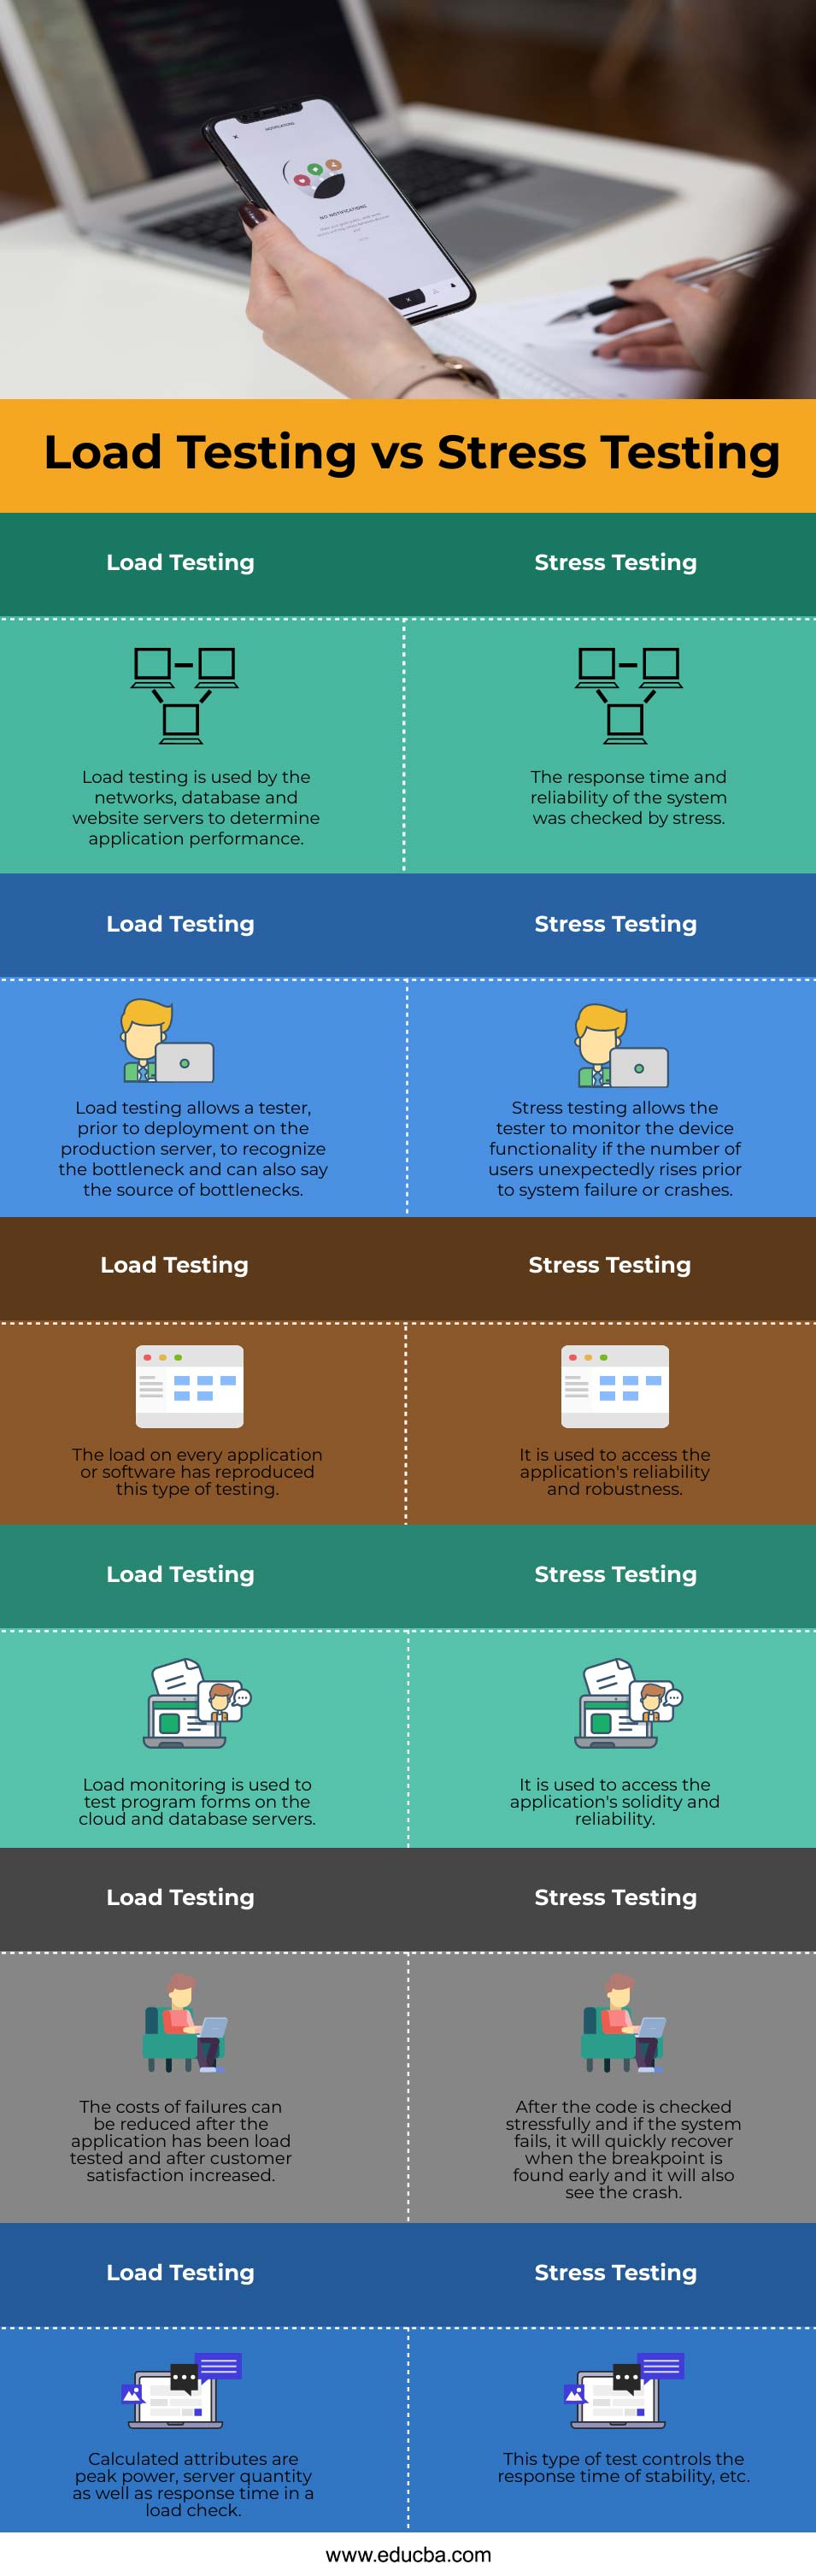 Load Testing vs Stress Testing info